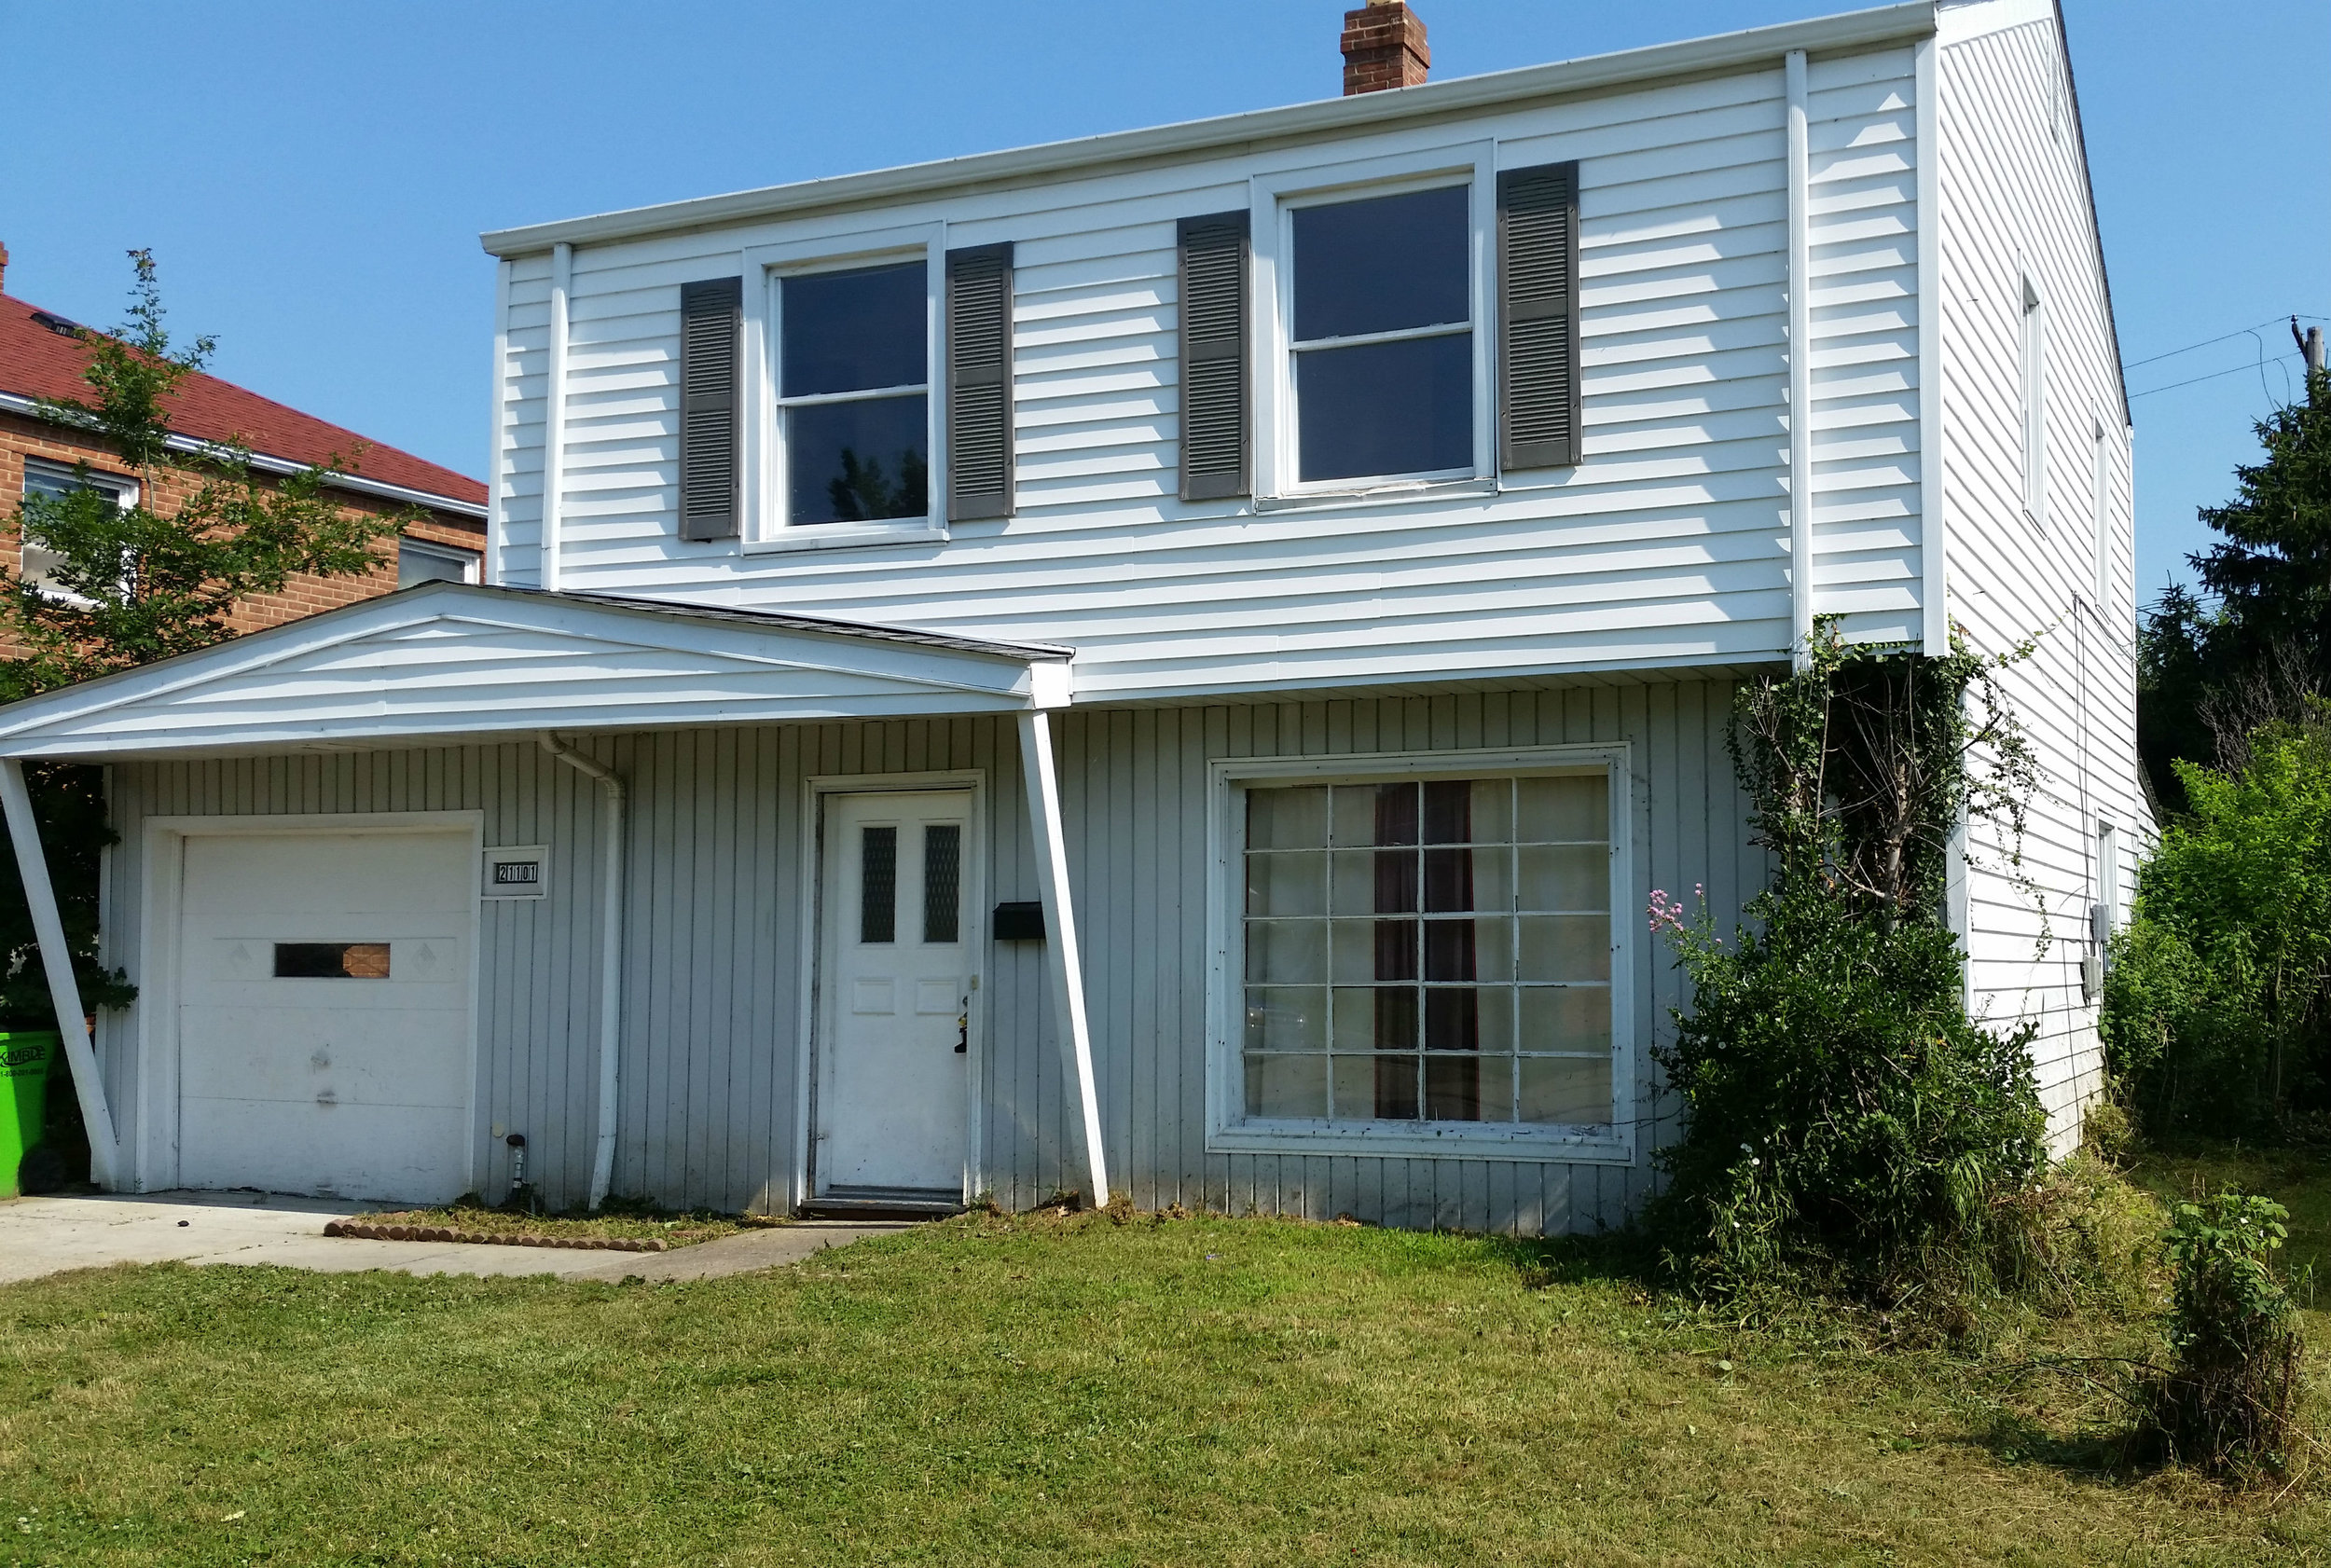 21101 Priday Ave., Euclid | 3 bed 1 bath | 1,312 Sq. Ft. | $36,000